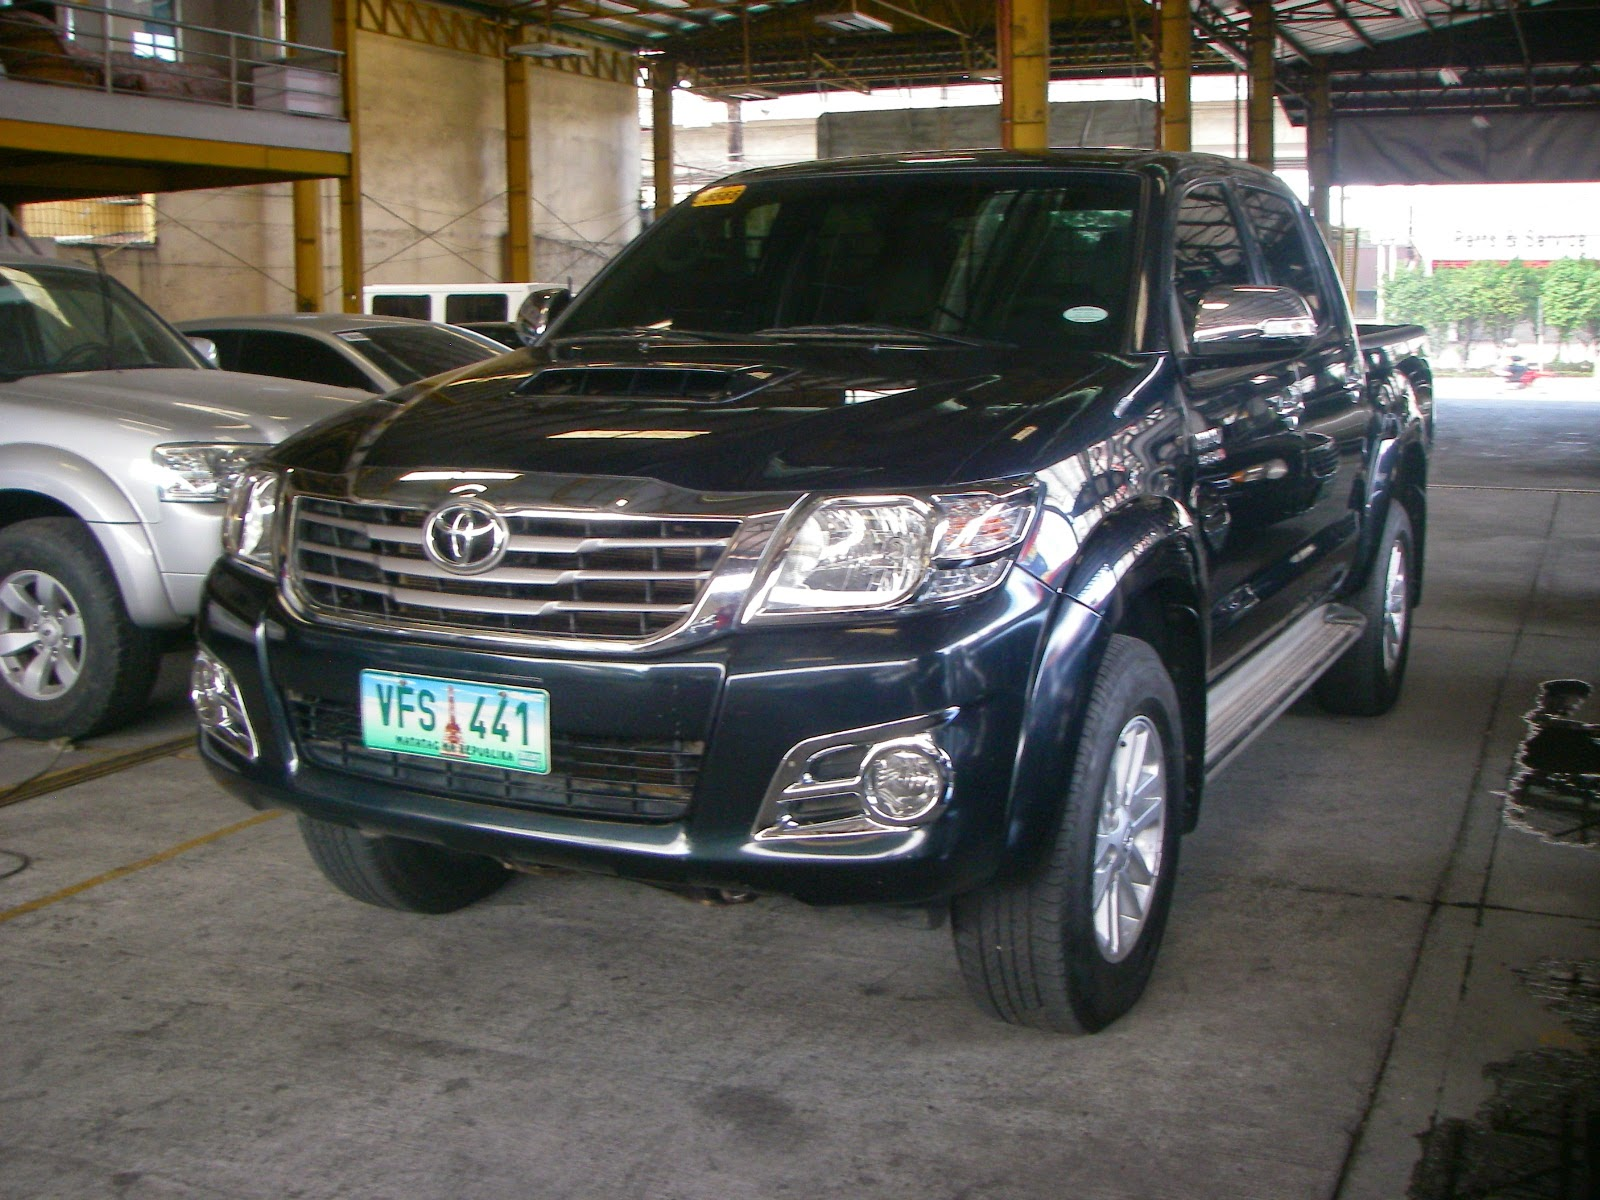 Cars Sale Philippines New Cars for Sale In the Philippines 2013 toyota Hilux 4×4 Manual Sel